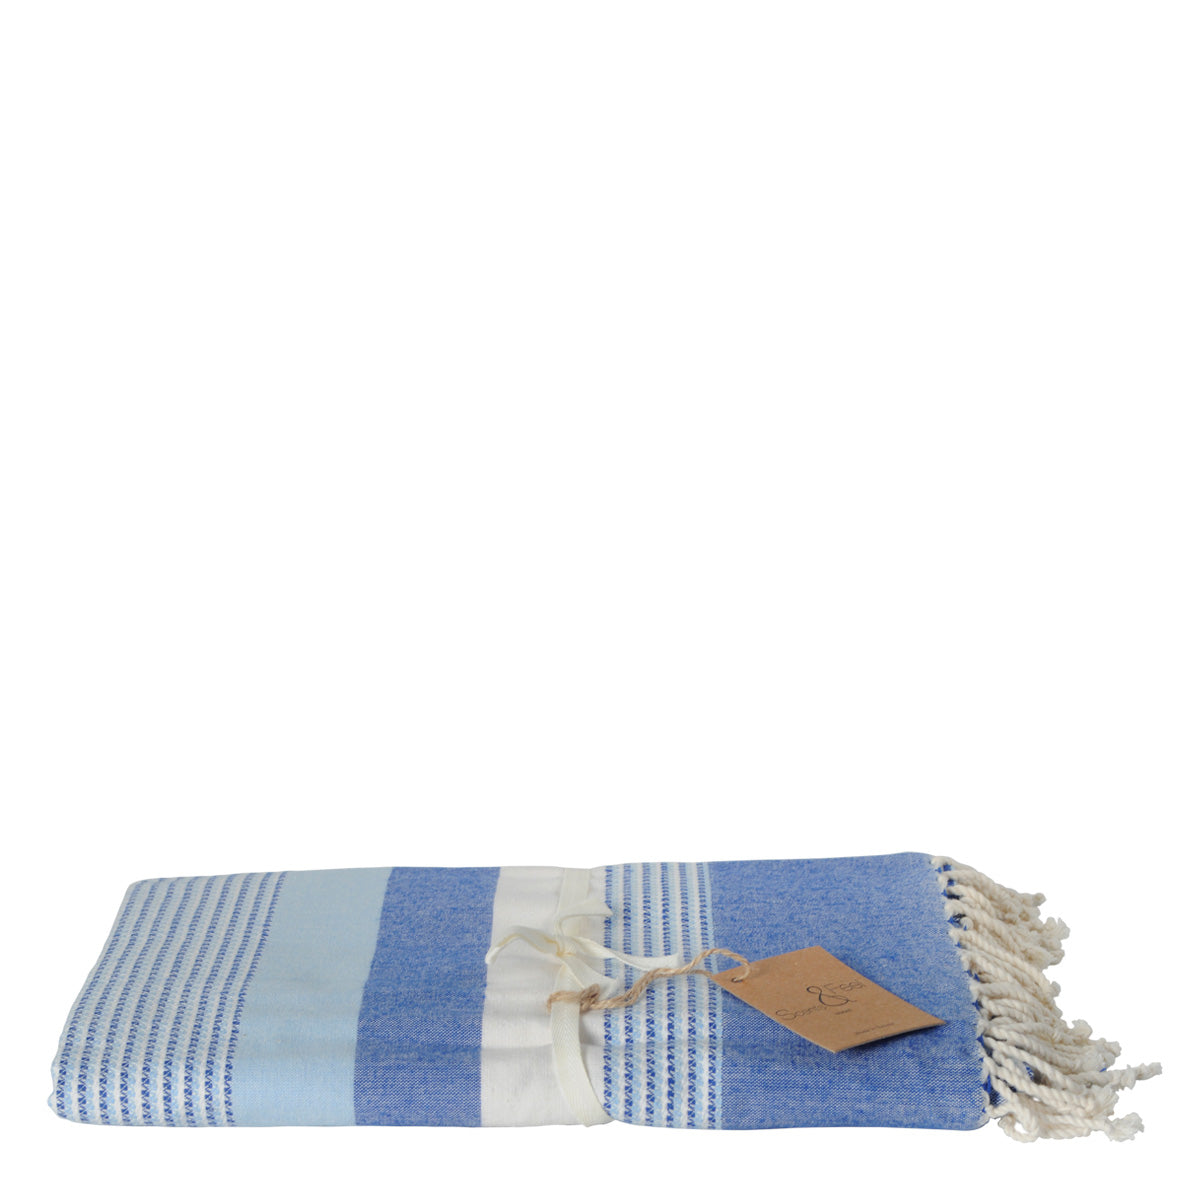 Ibiza Blue Beach Towel